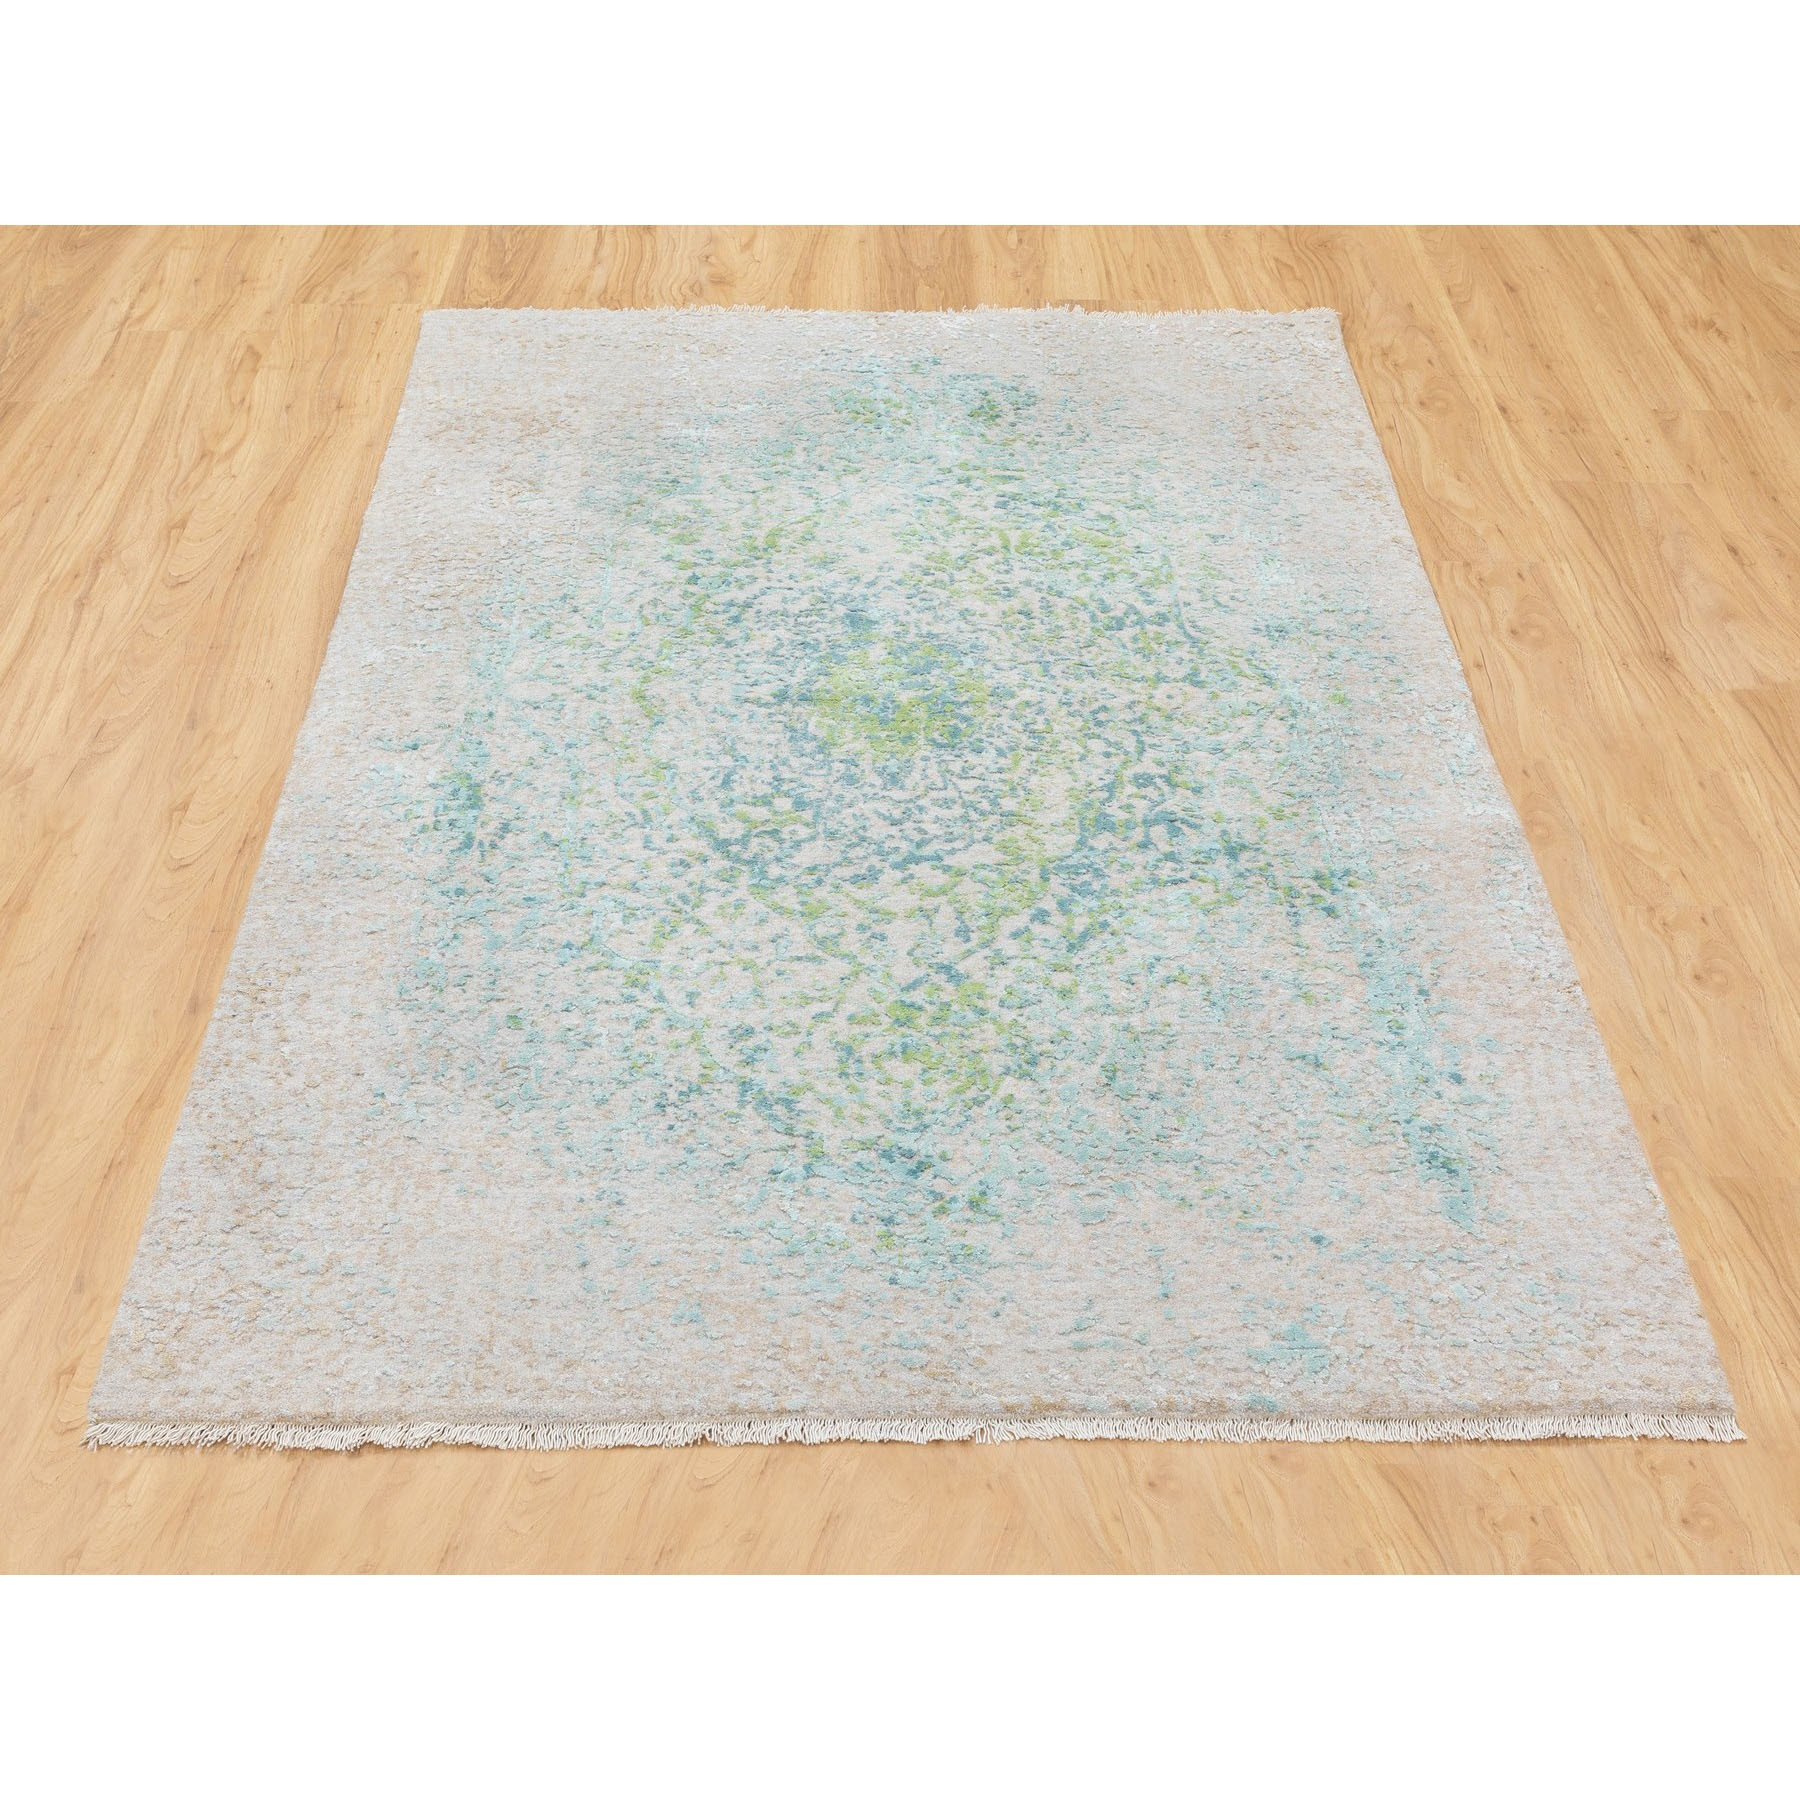 4'x6' Ivory Touch Of Green Pure Silk With Textured Wool Hand Knotted Oriental Rug